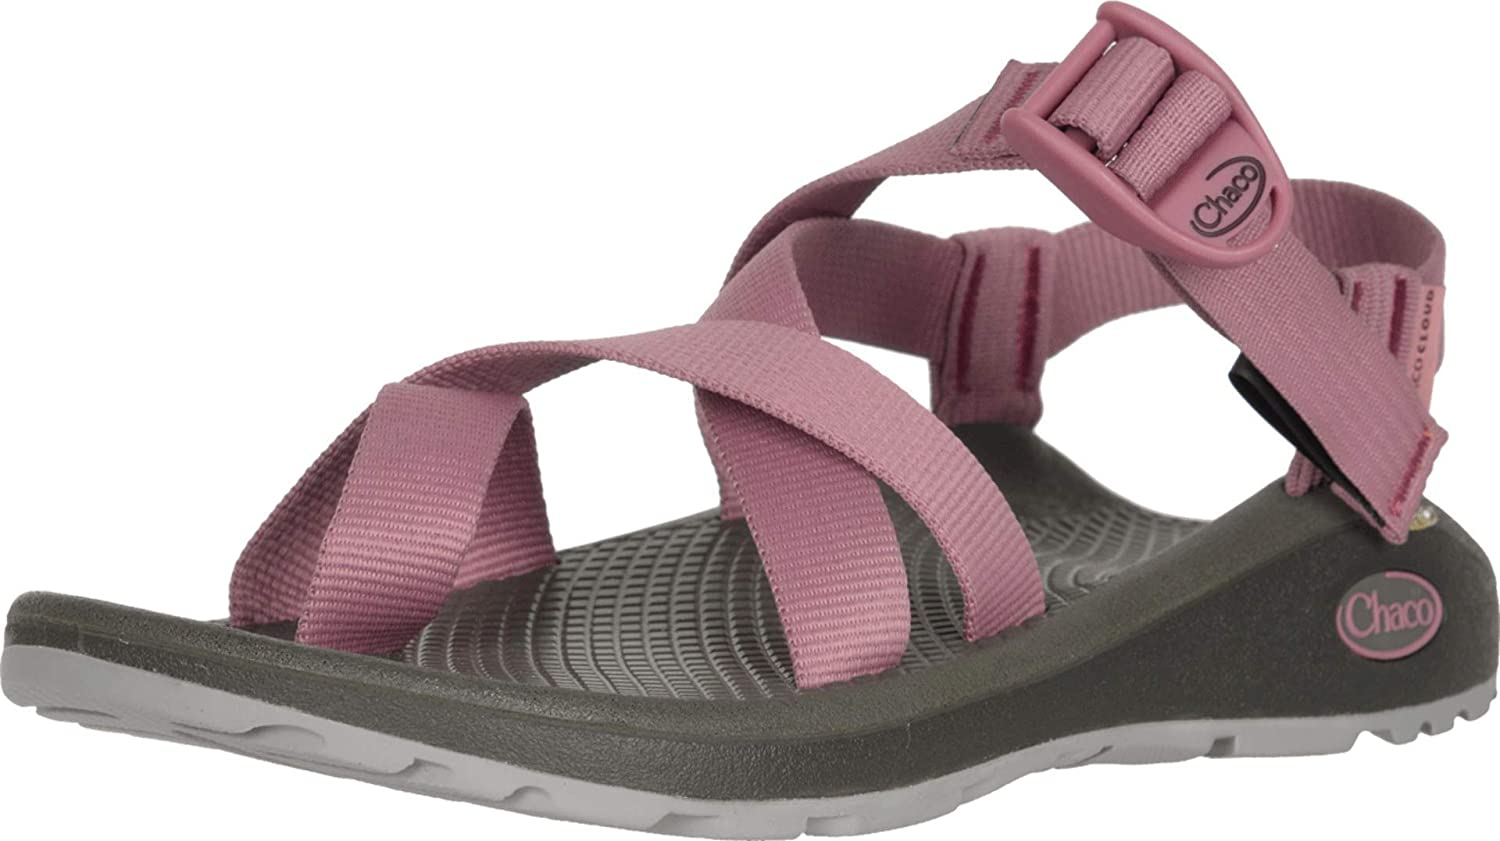 Max 63% OFF Ranking TOP13 Chaco womens Zcloud 2